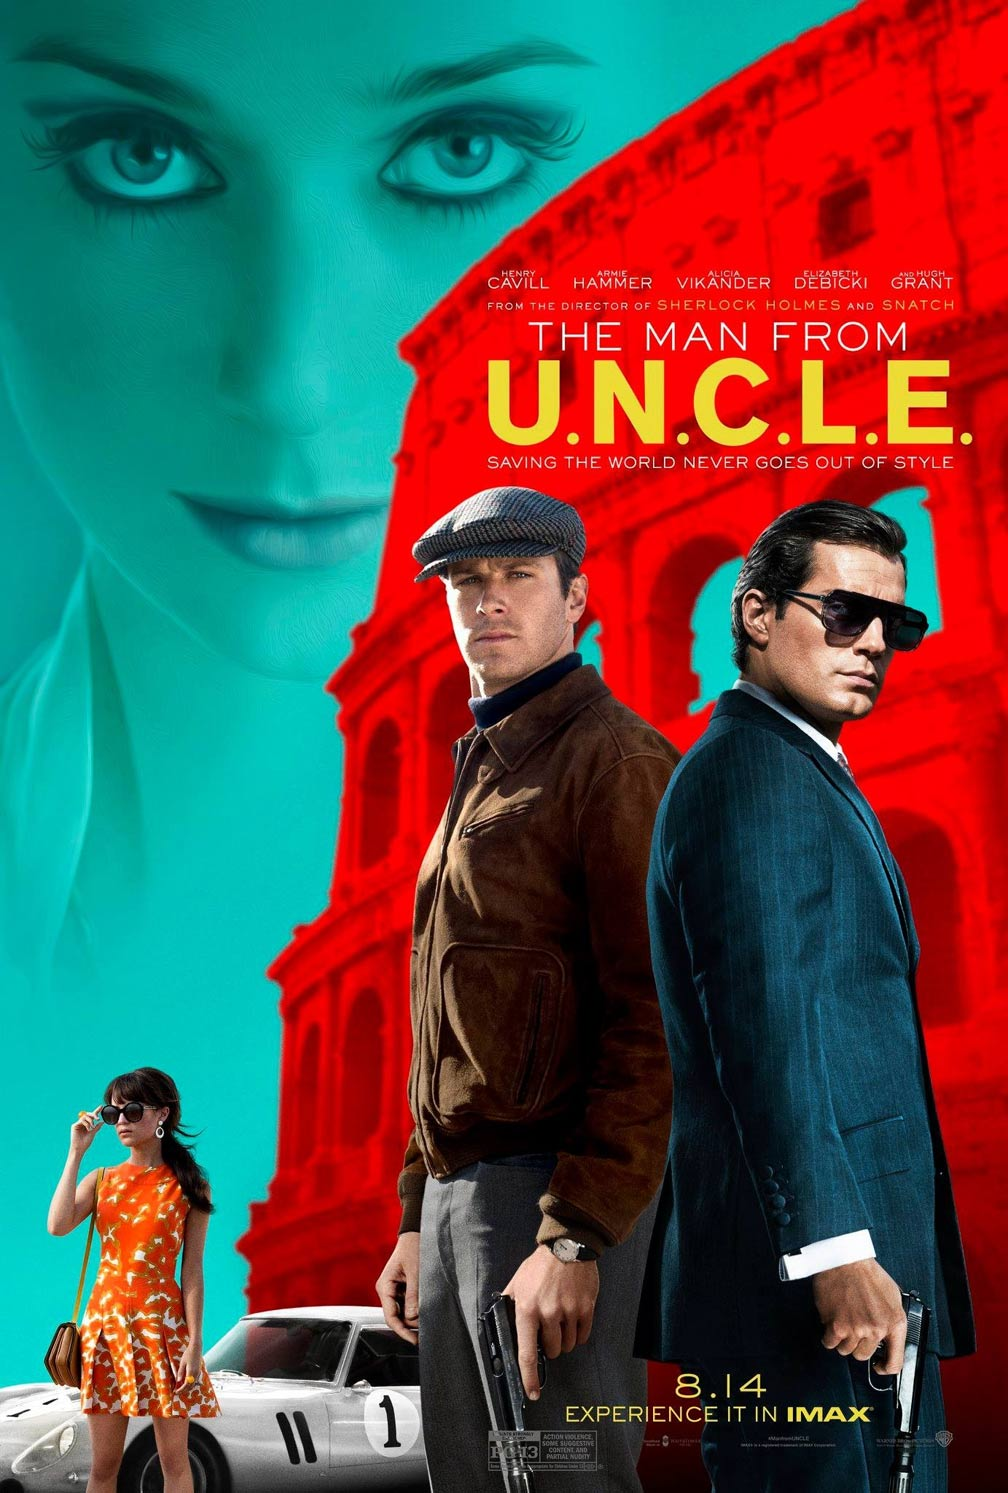 The Man from U.N.C.L.E. Poster #2